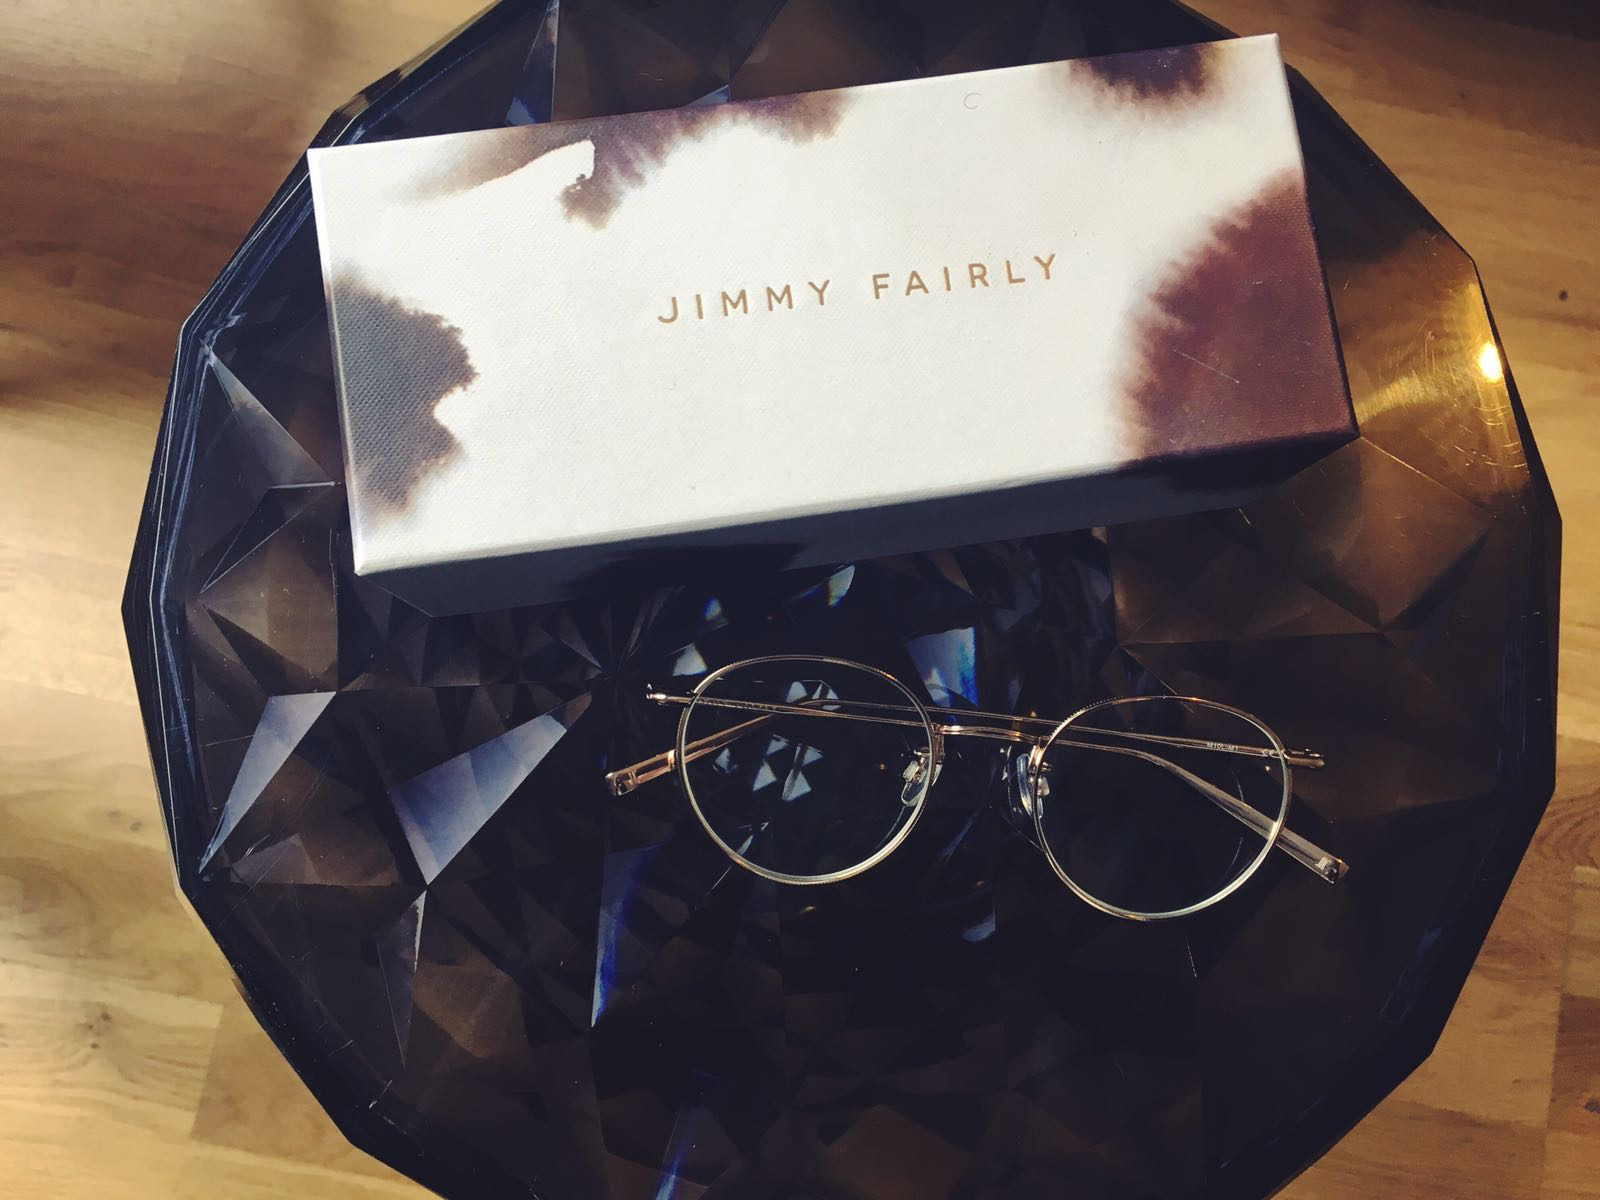 lunettes-monture-fine-metal-doree-or-agrent-jimmy-fairly-1